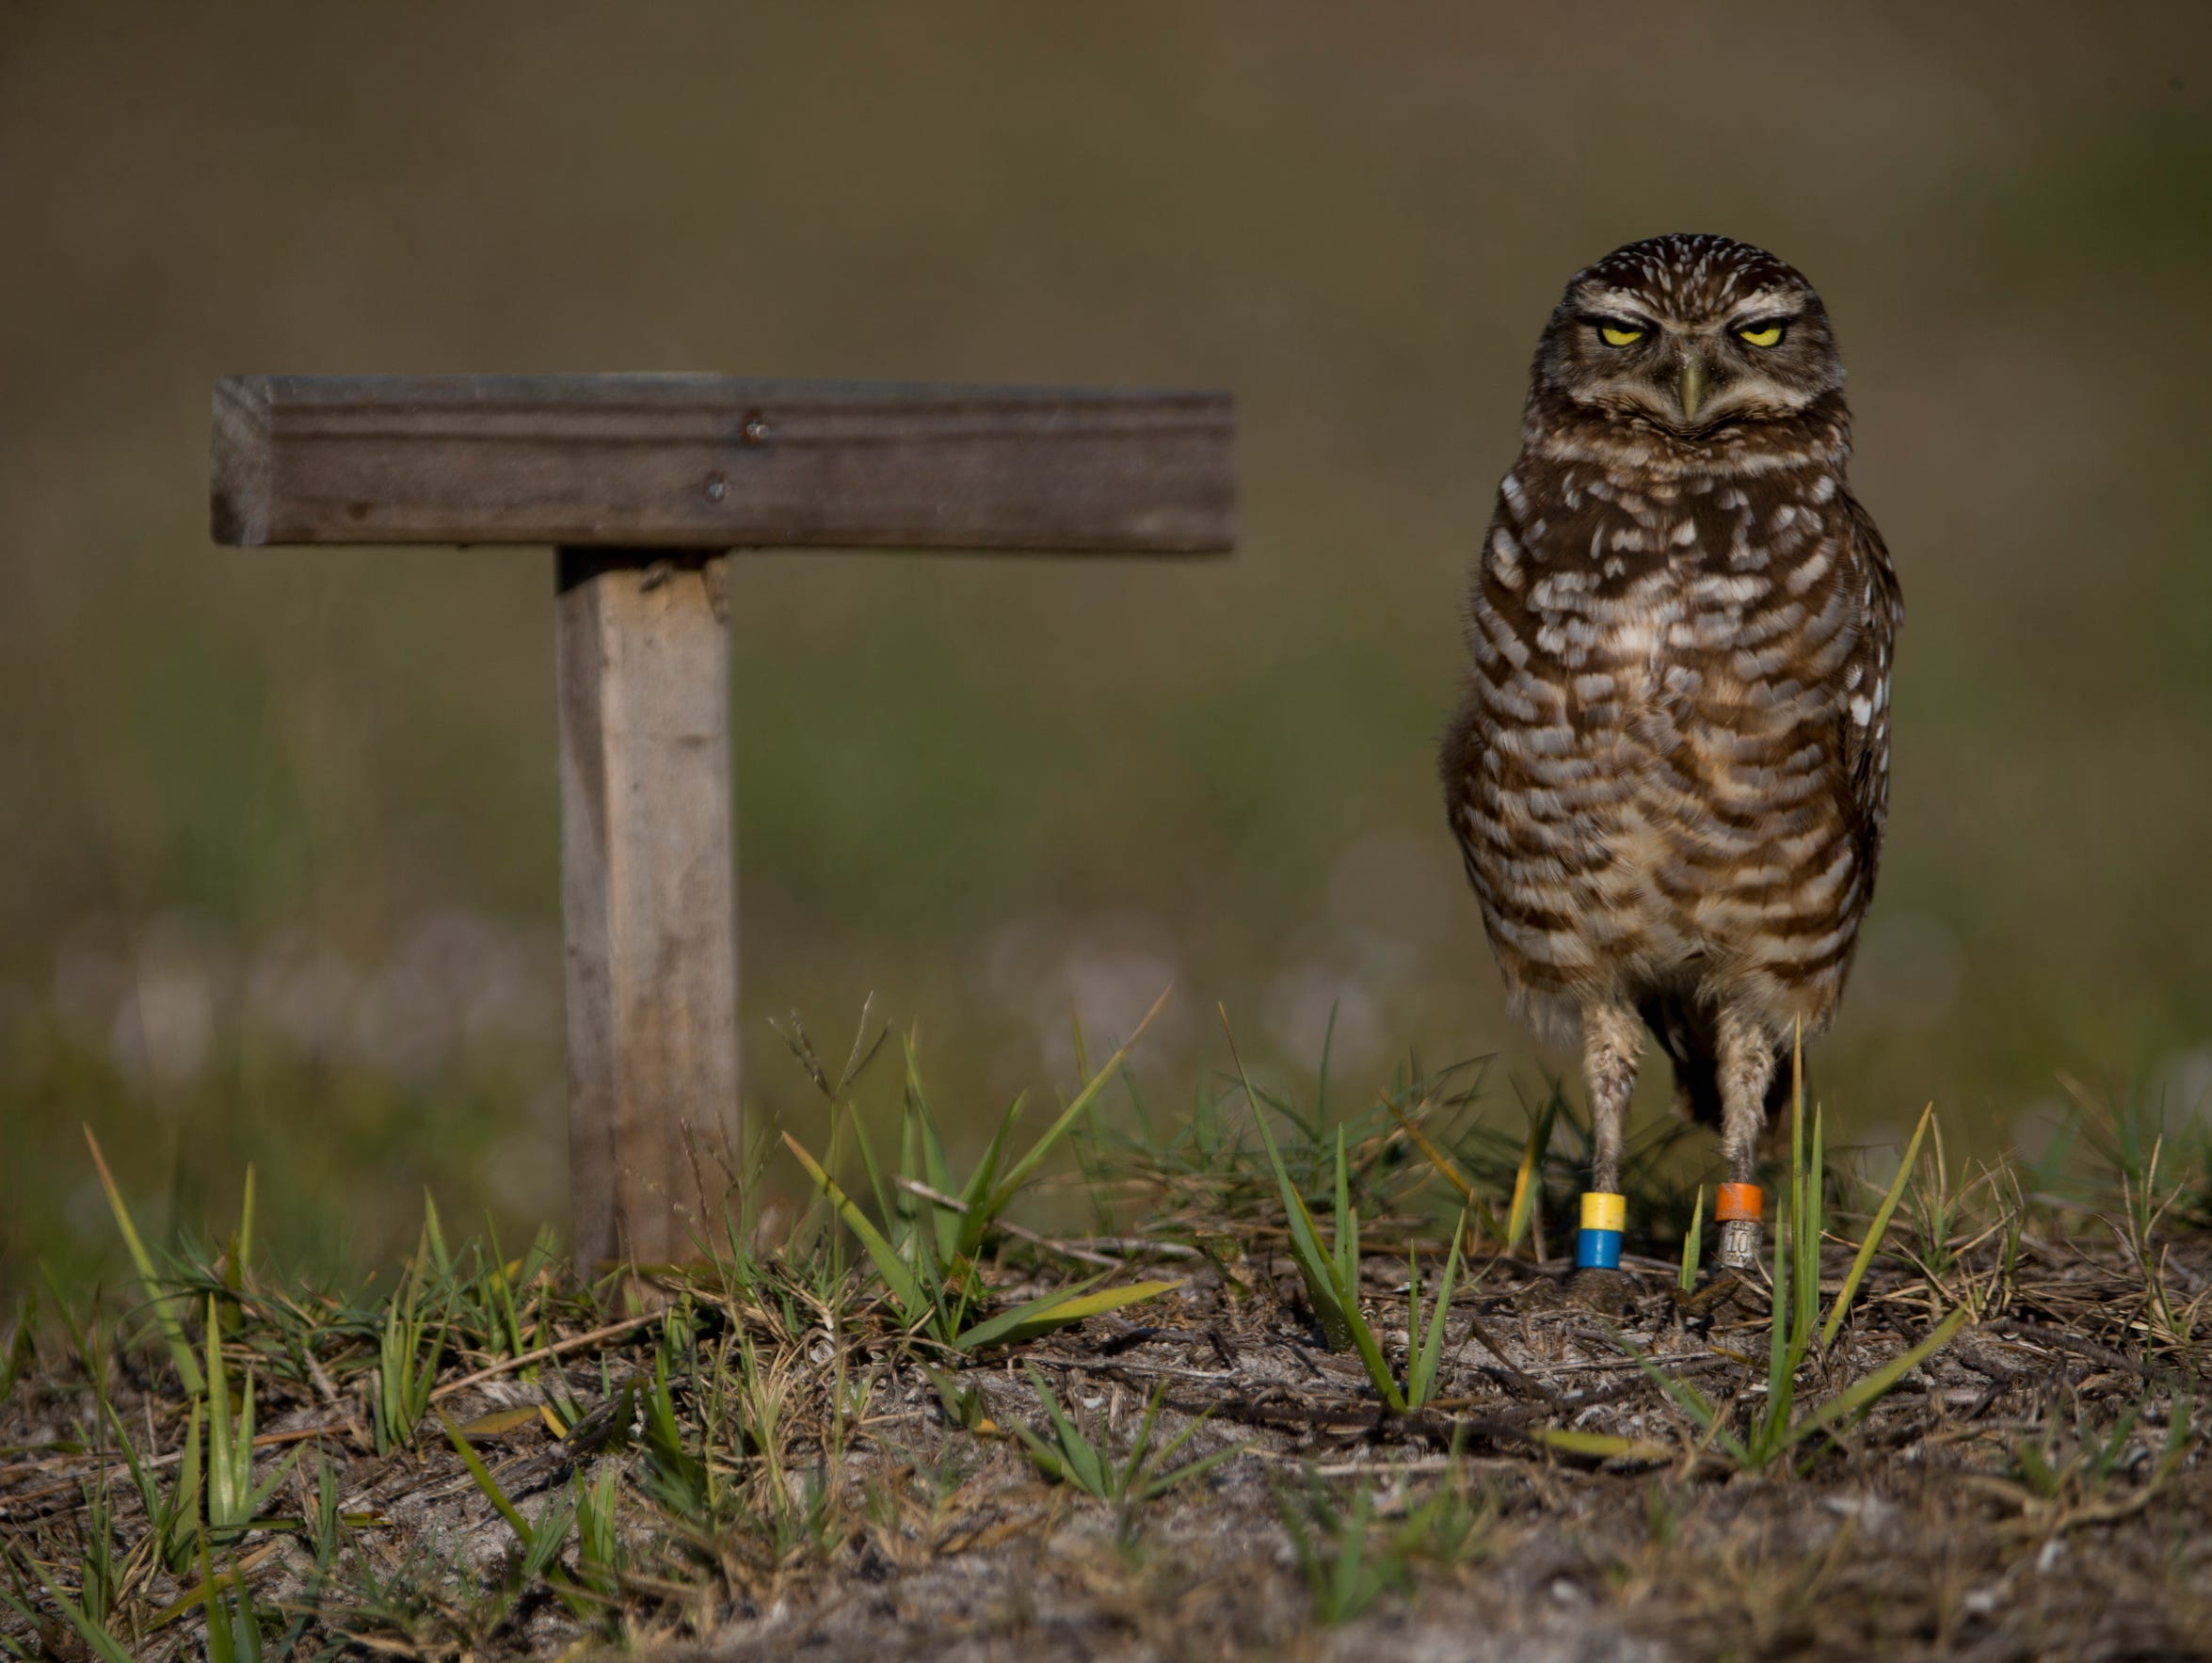 A burrowing owl, with multiple colored bands around